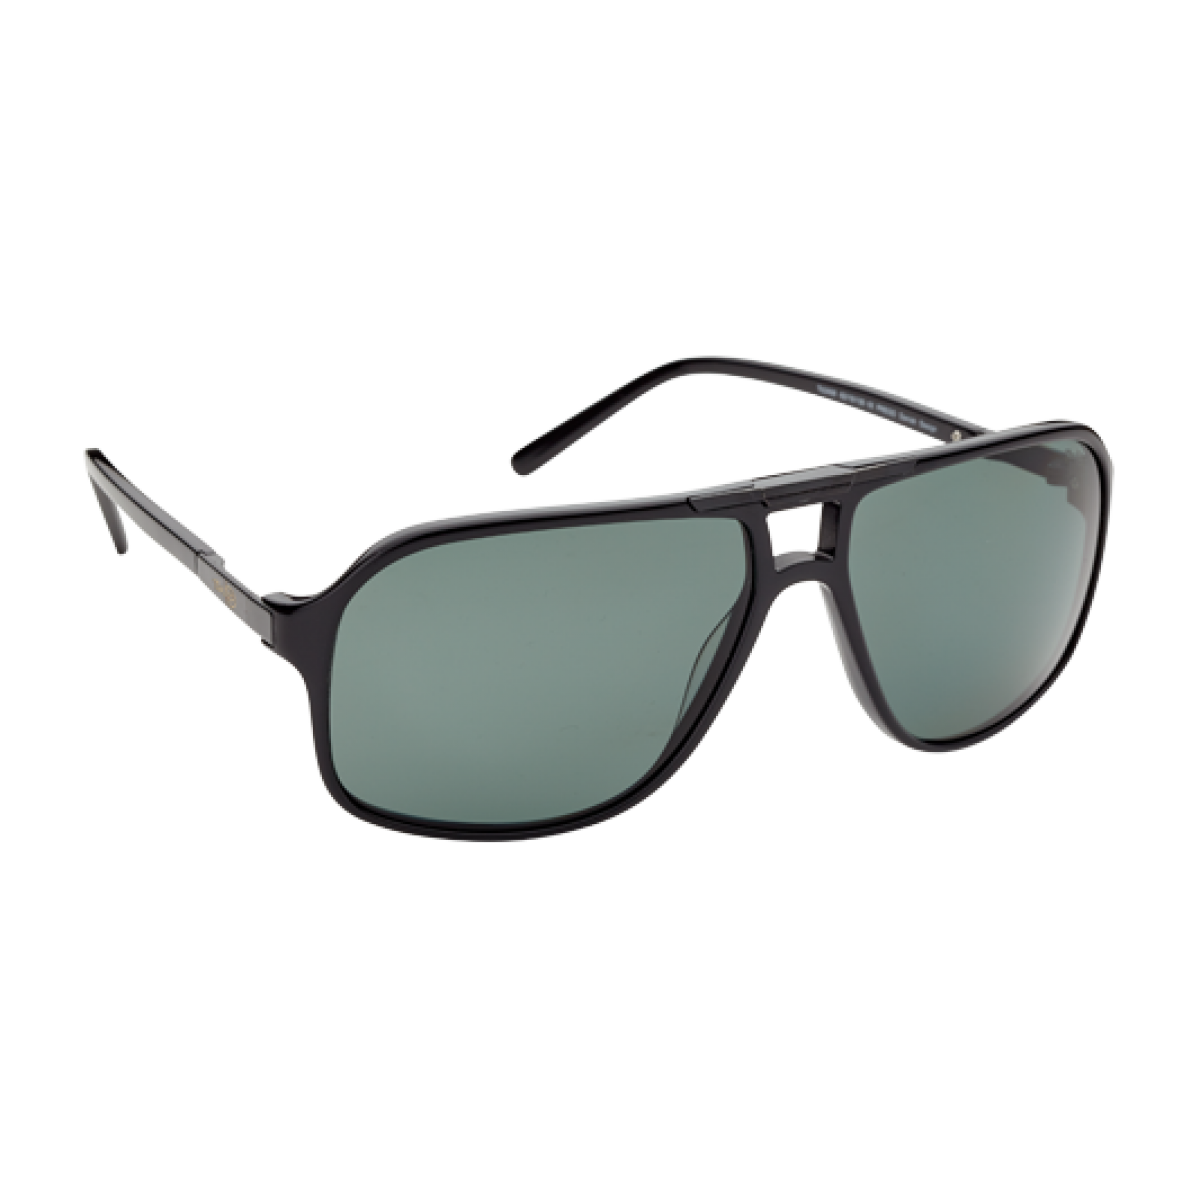 Tom Kristensen Solbrille Model TK2406 Polarized-3